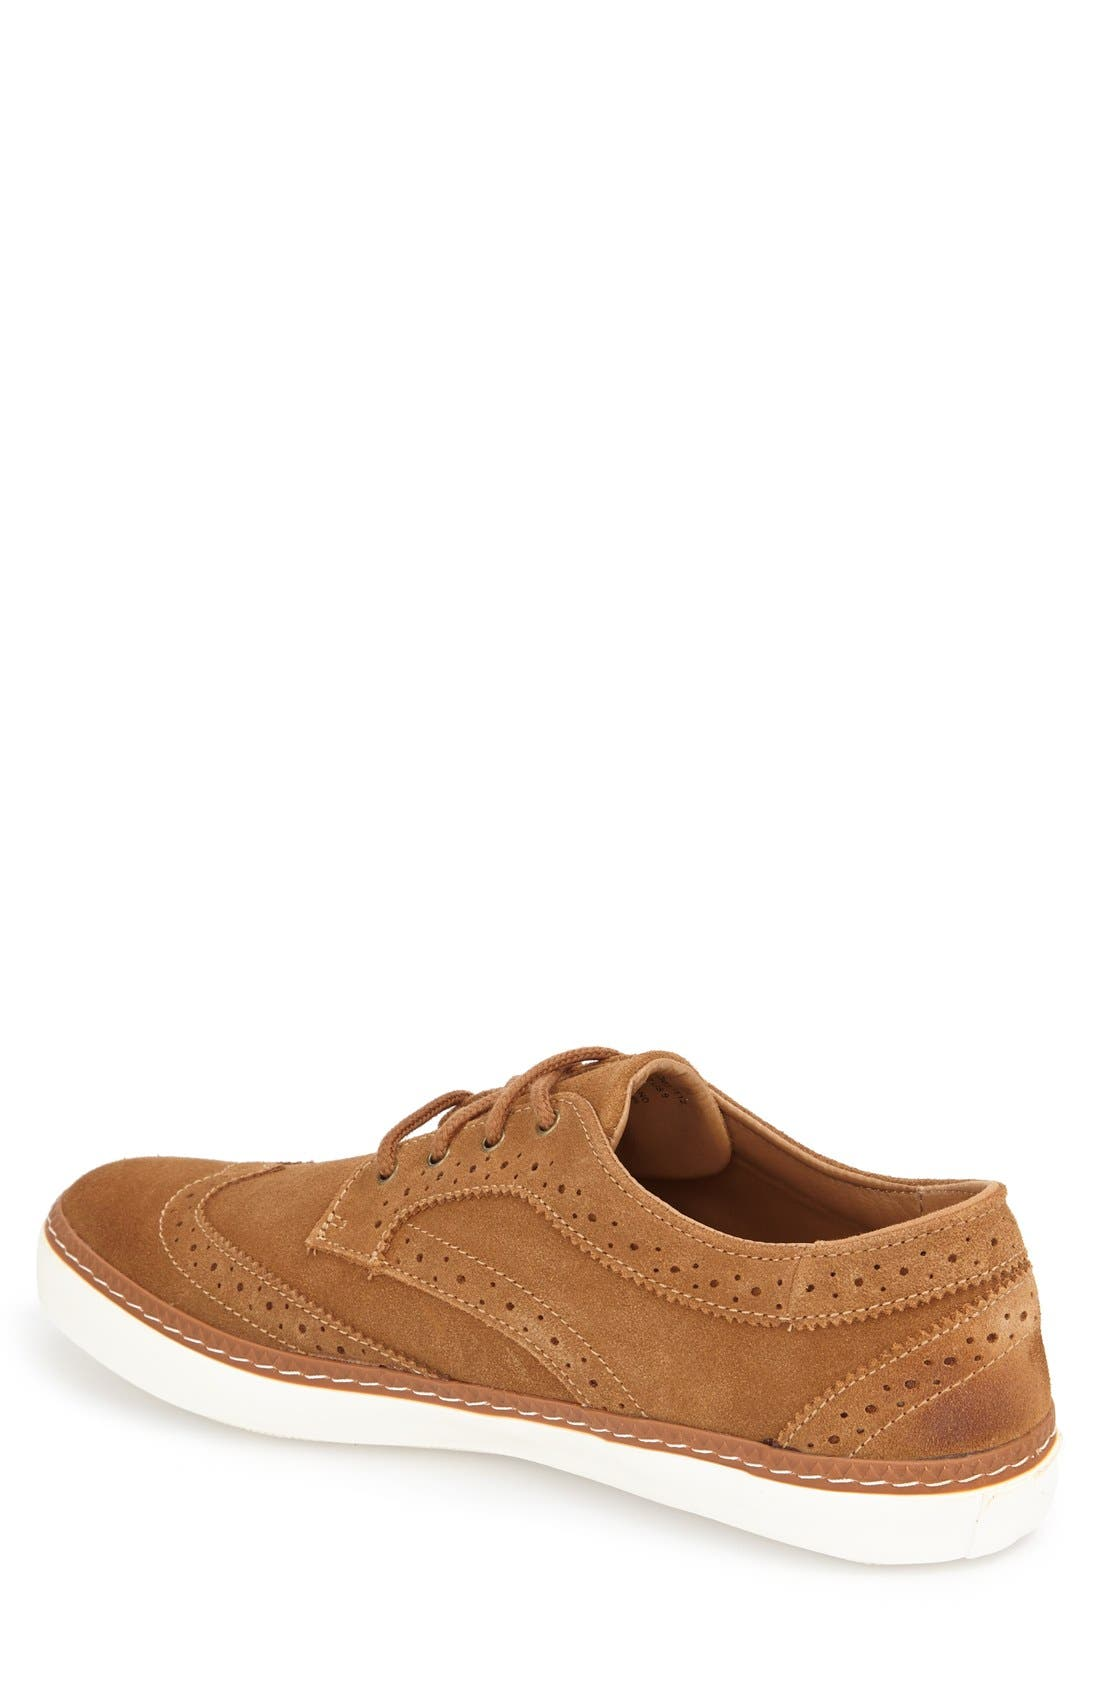 'Novello' Wingtip Sneaker,                             Alternate thumbnail 8, color,